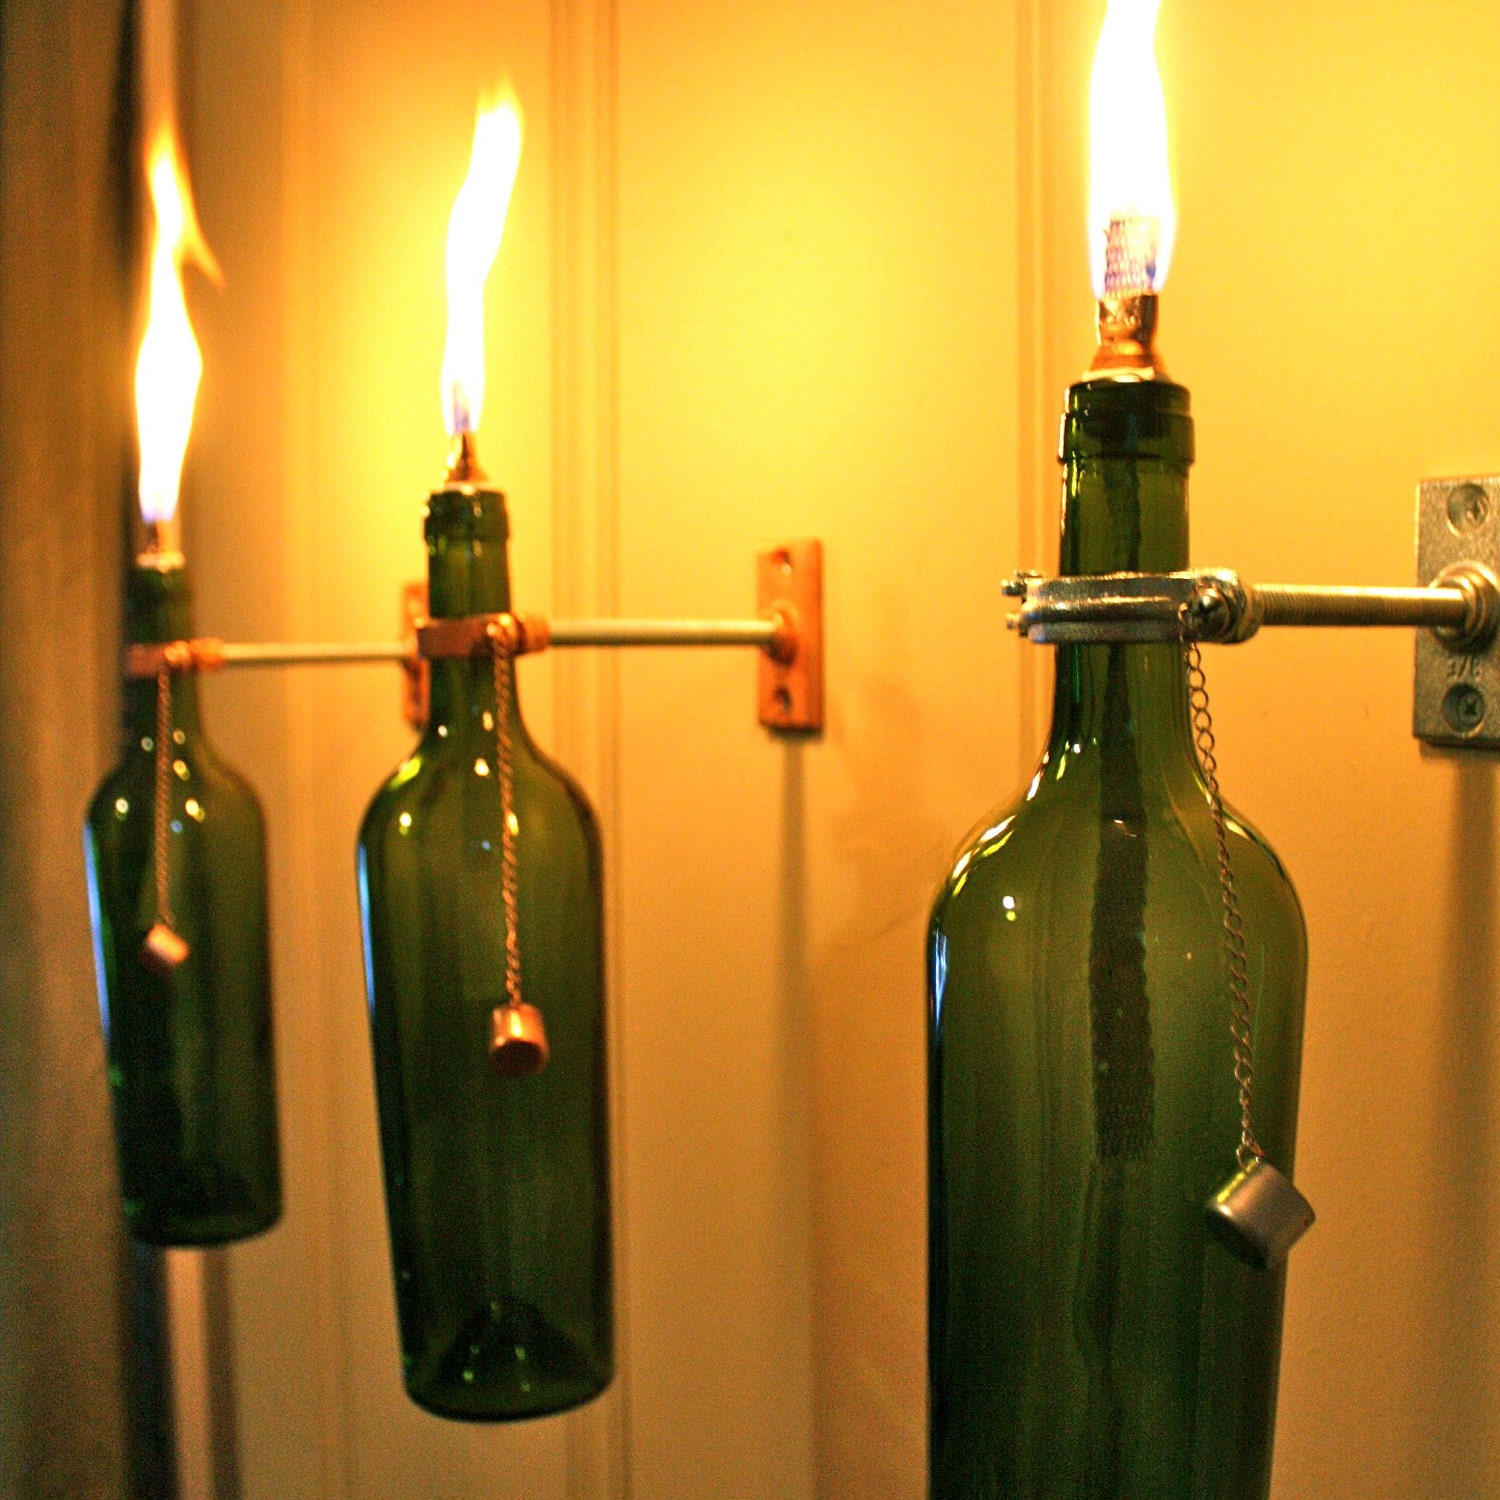 Indoor Wall Lantern Lights : 3 Wine Bottle Oil Lamps - INDOOR - Gift for Her - Hanging